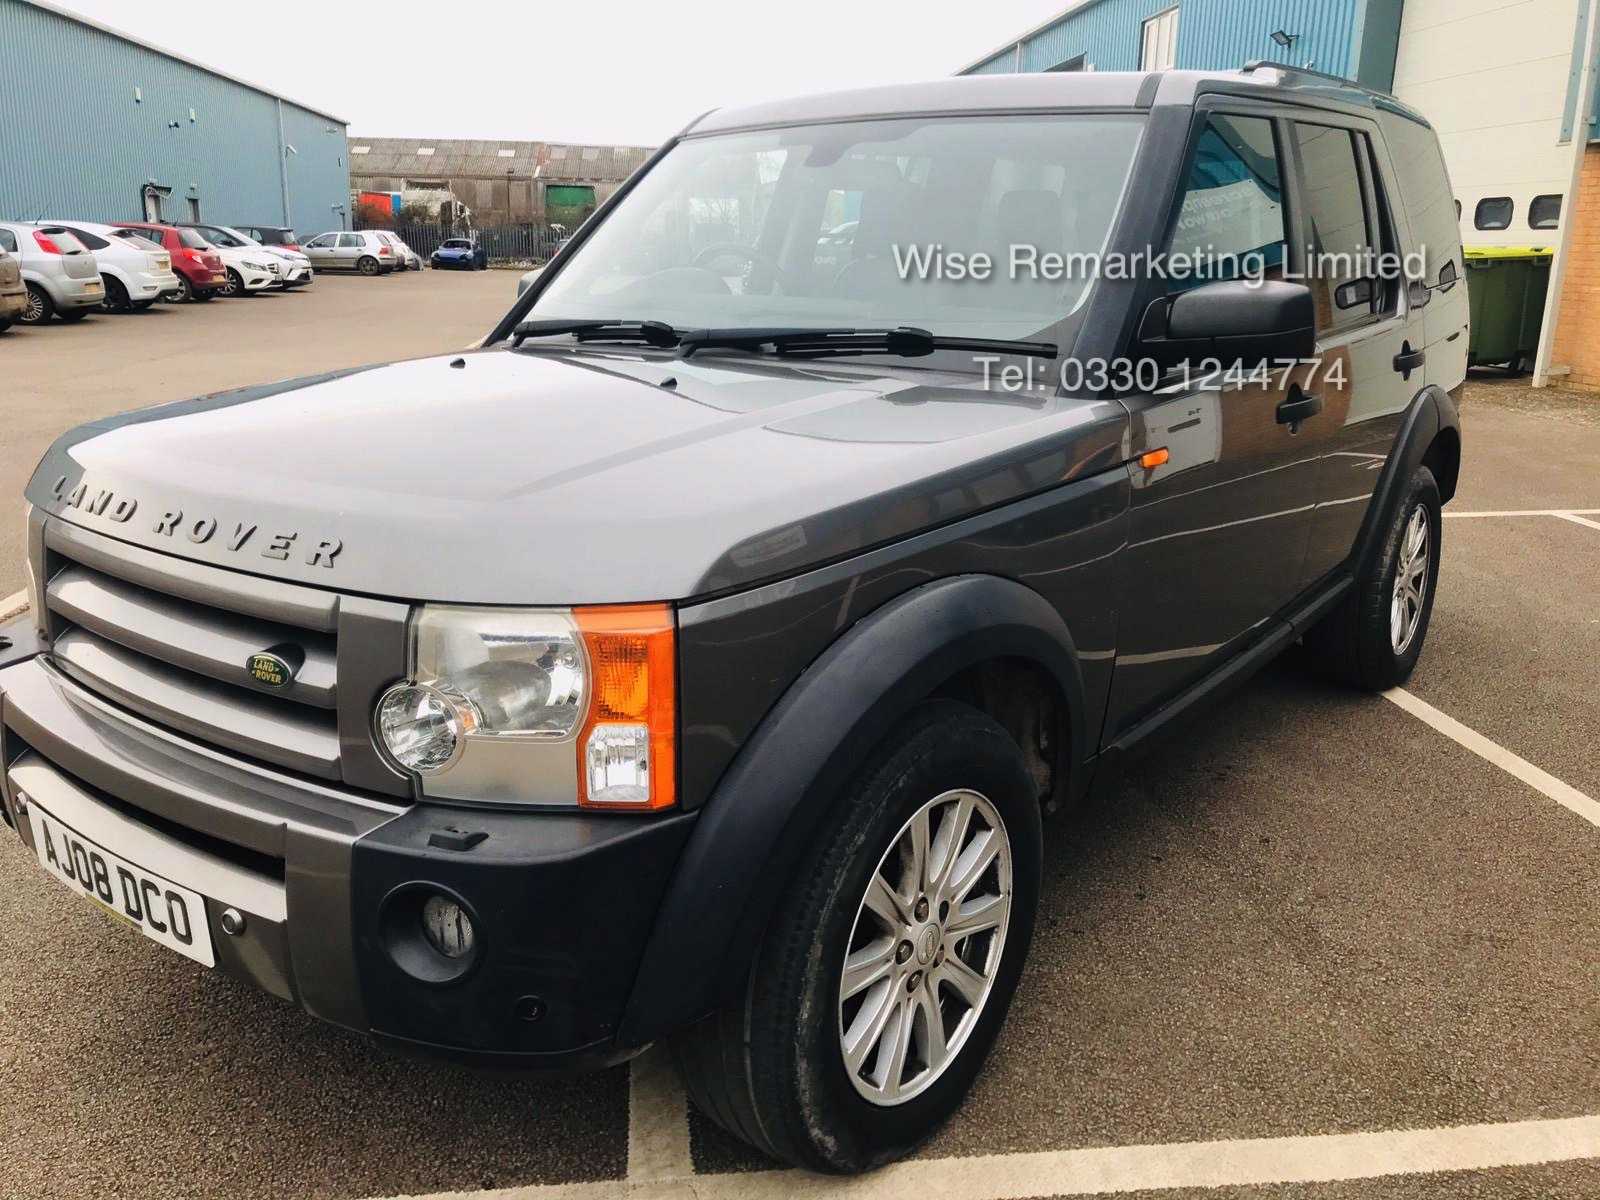 Land Rover Discovery SE 2.7 TDV6 Automatic - 2008 08 Reg - 7 seats - 1 Keeper - Service History - Image 4 of 22